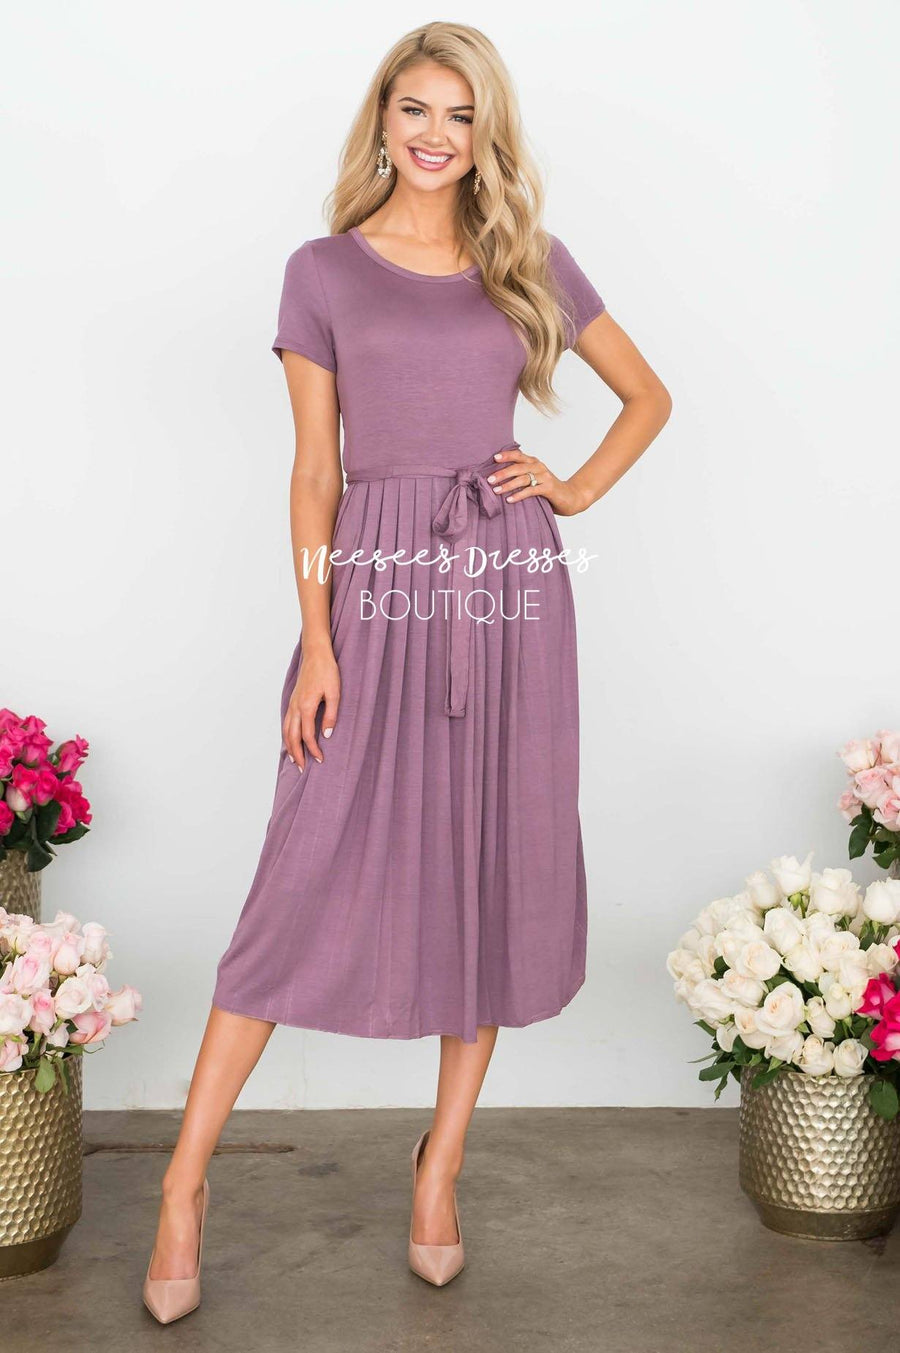 The Molly Pleats Dress